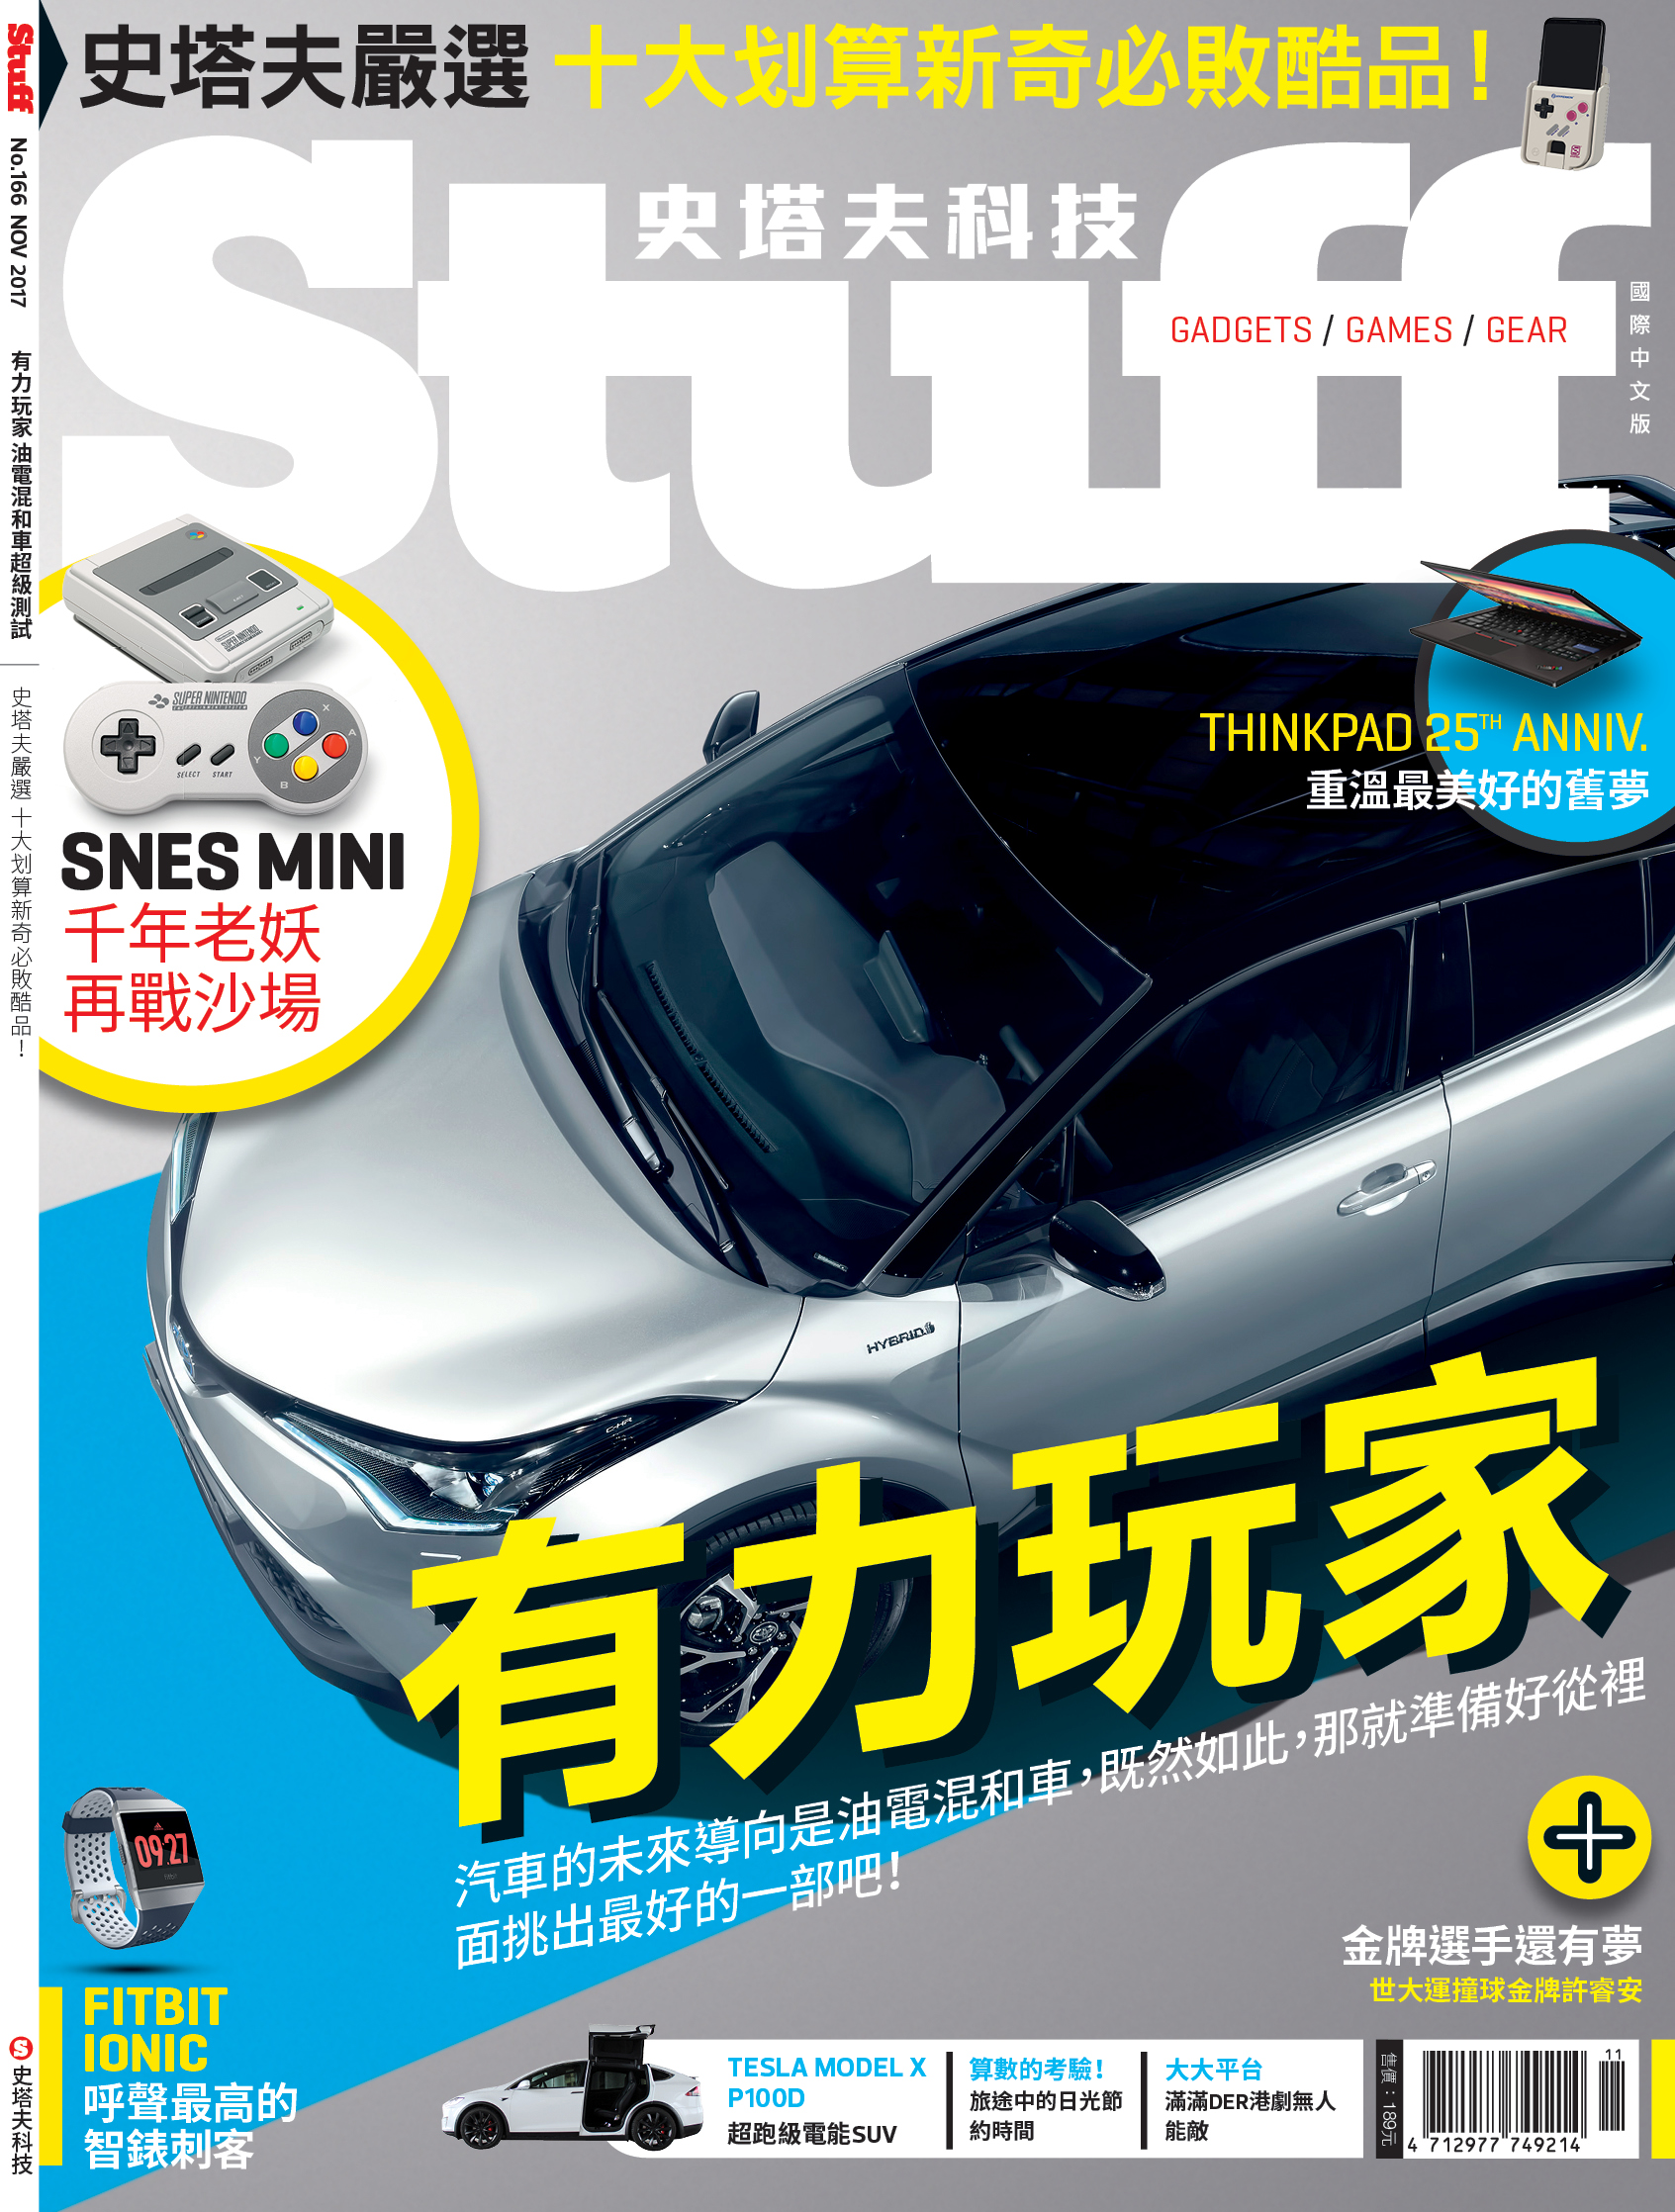 Stuff雜誌封面